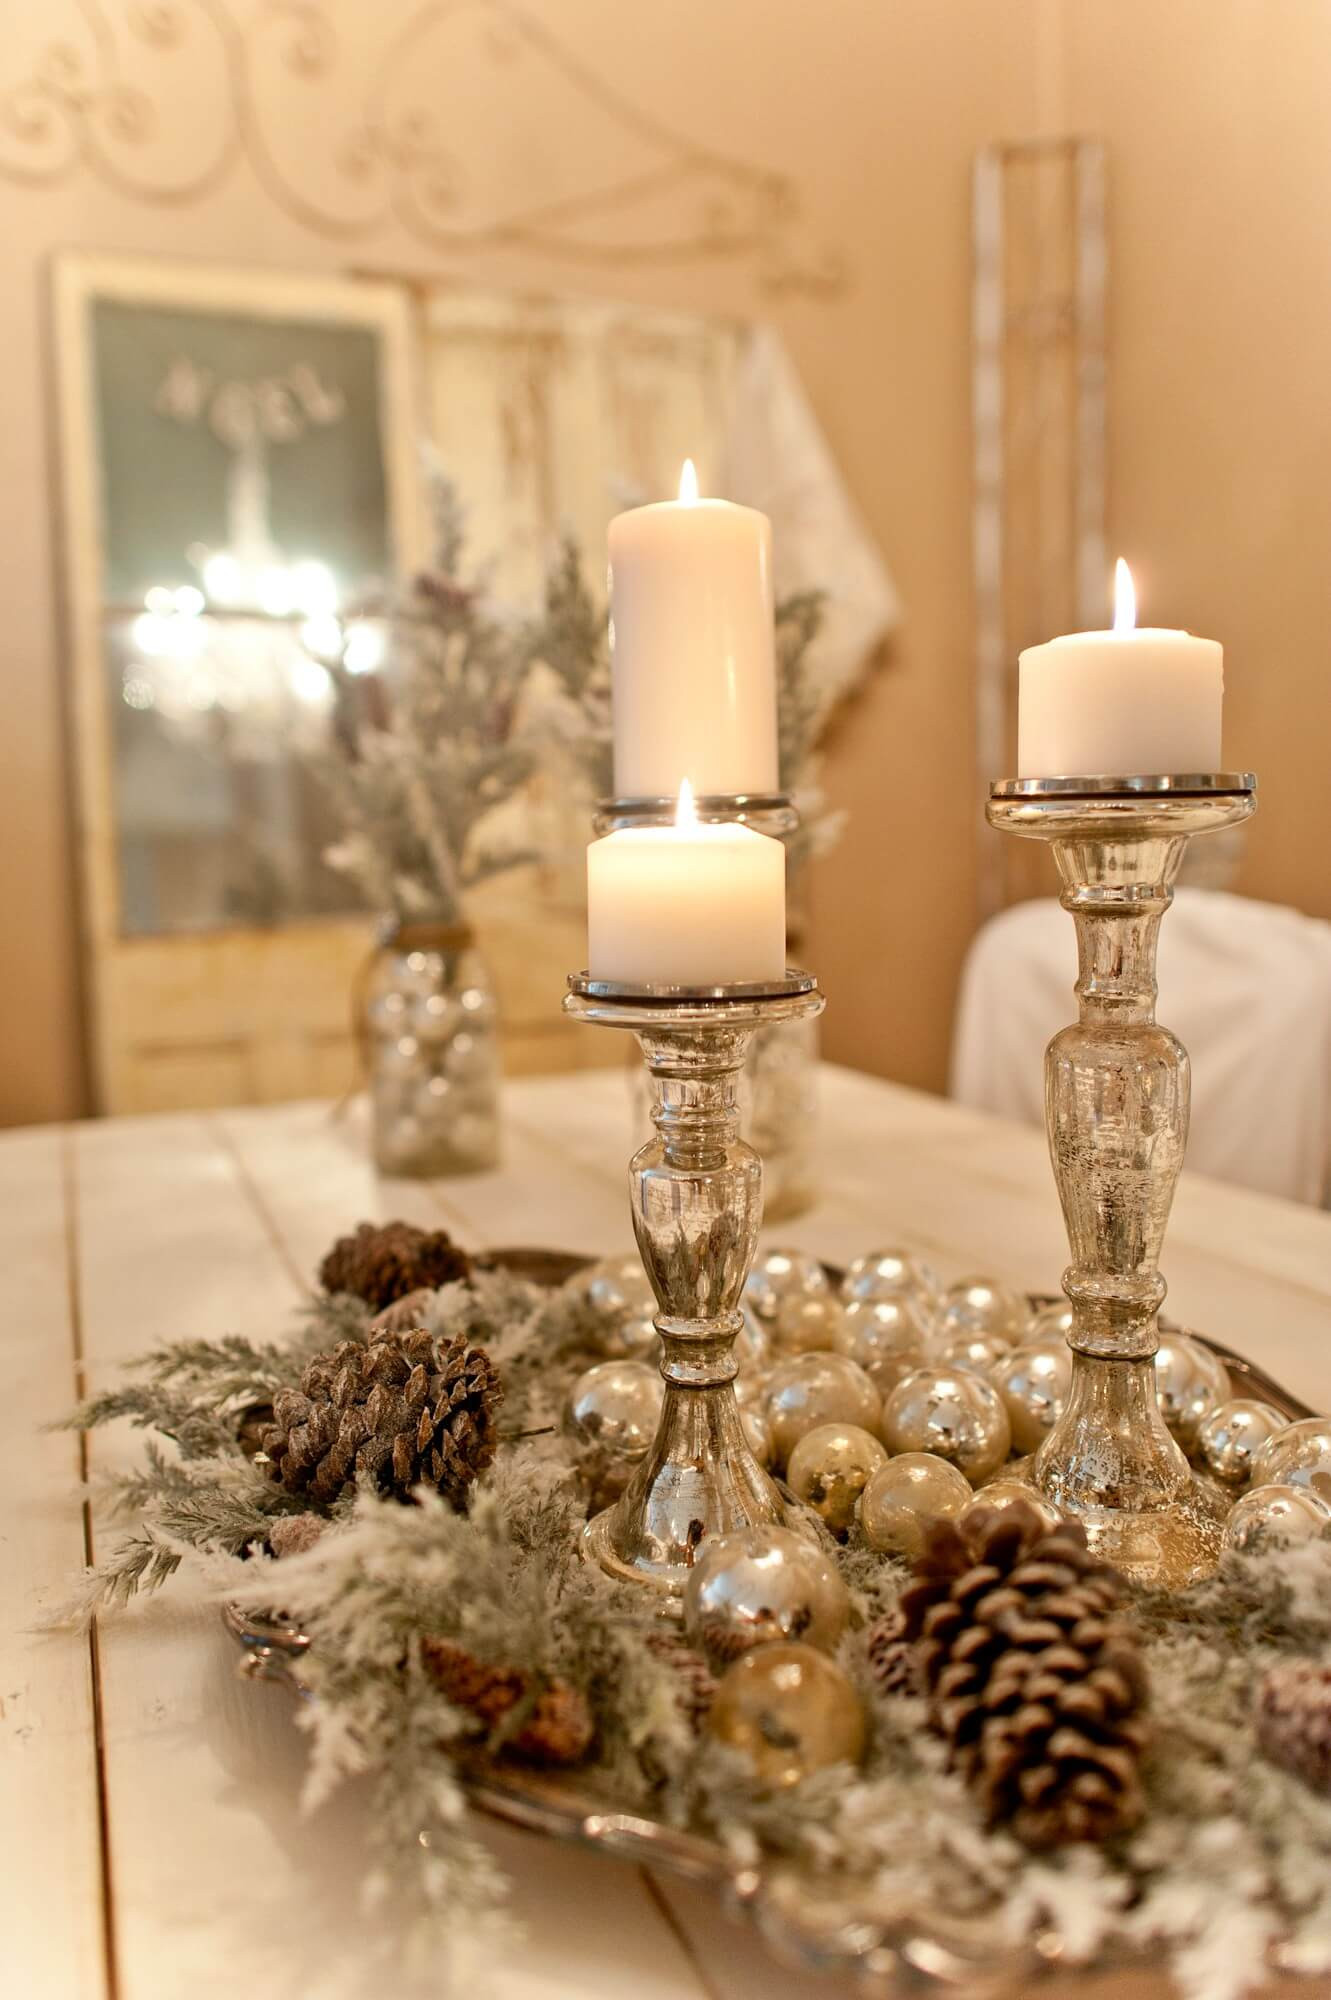 Best ideas about Christmas Centerpiece DIY . Save or Pin 28 Best DIY Christmas Centerpieces Ideas and Designs for Now.